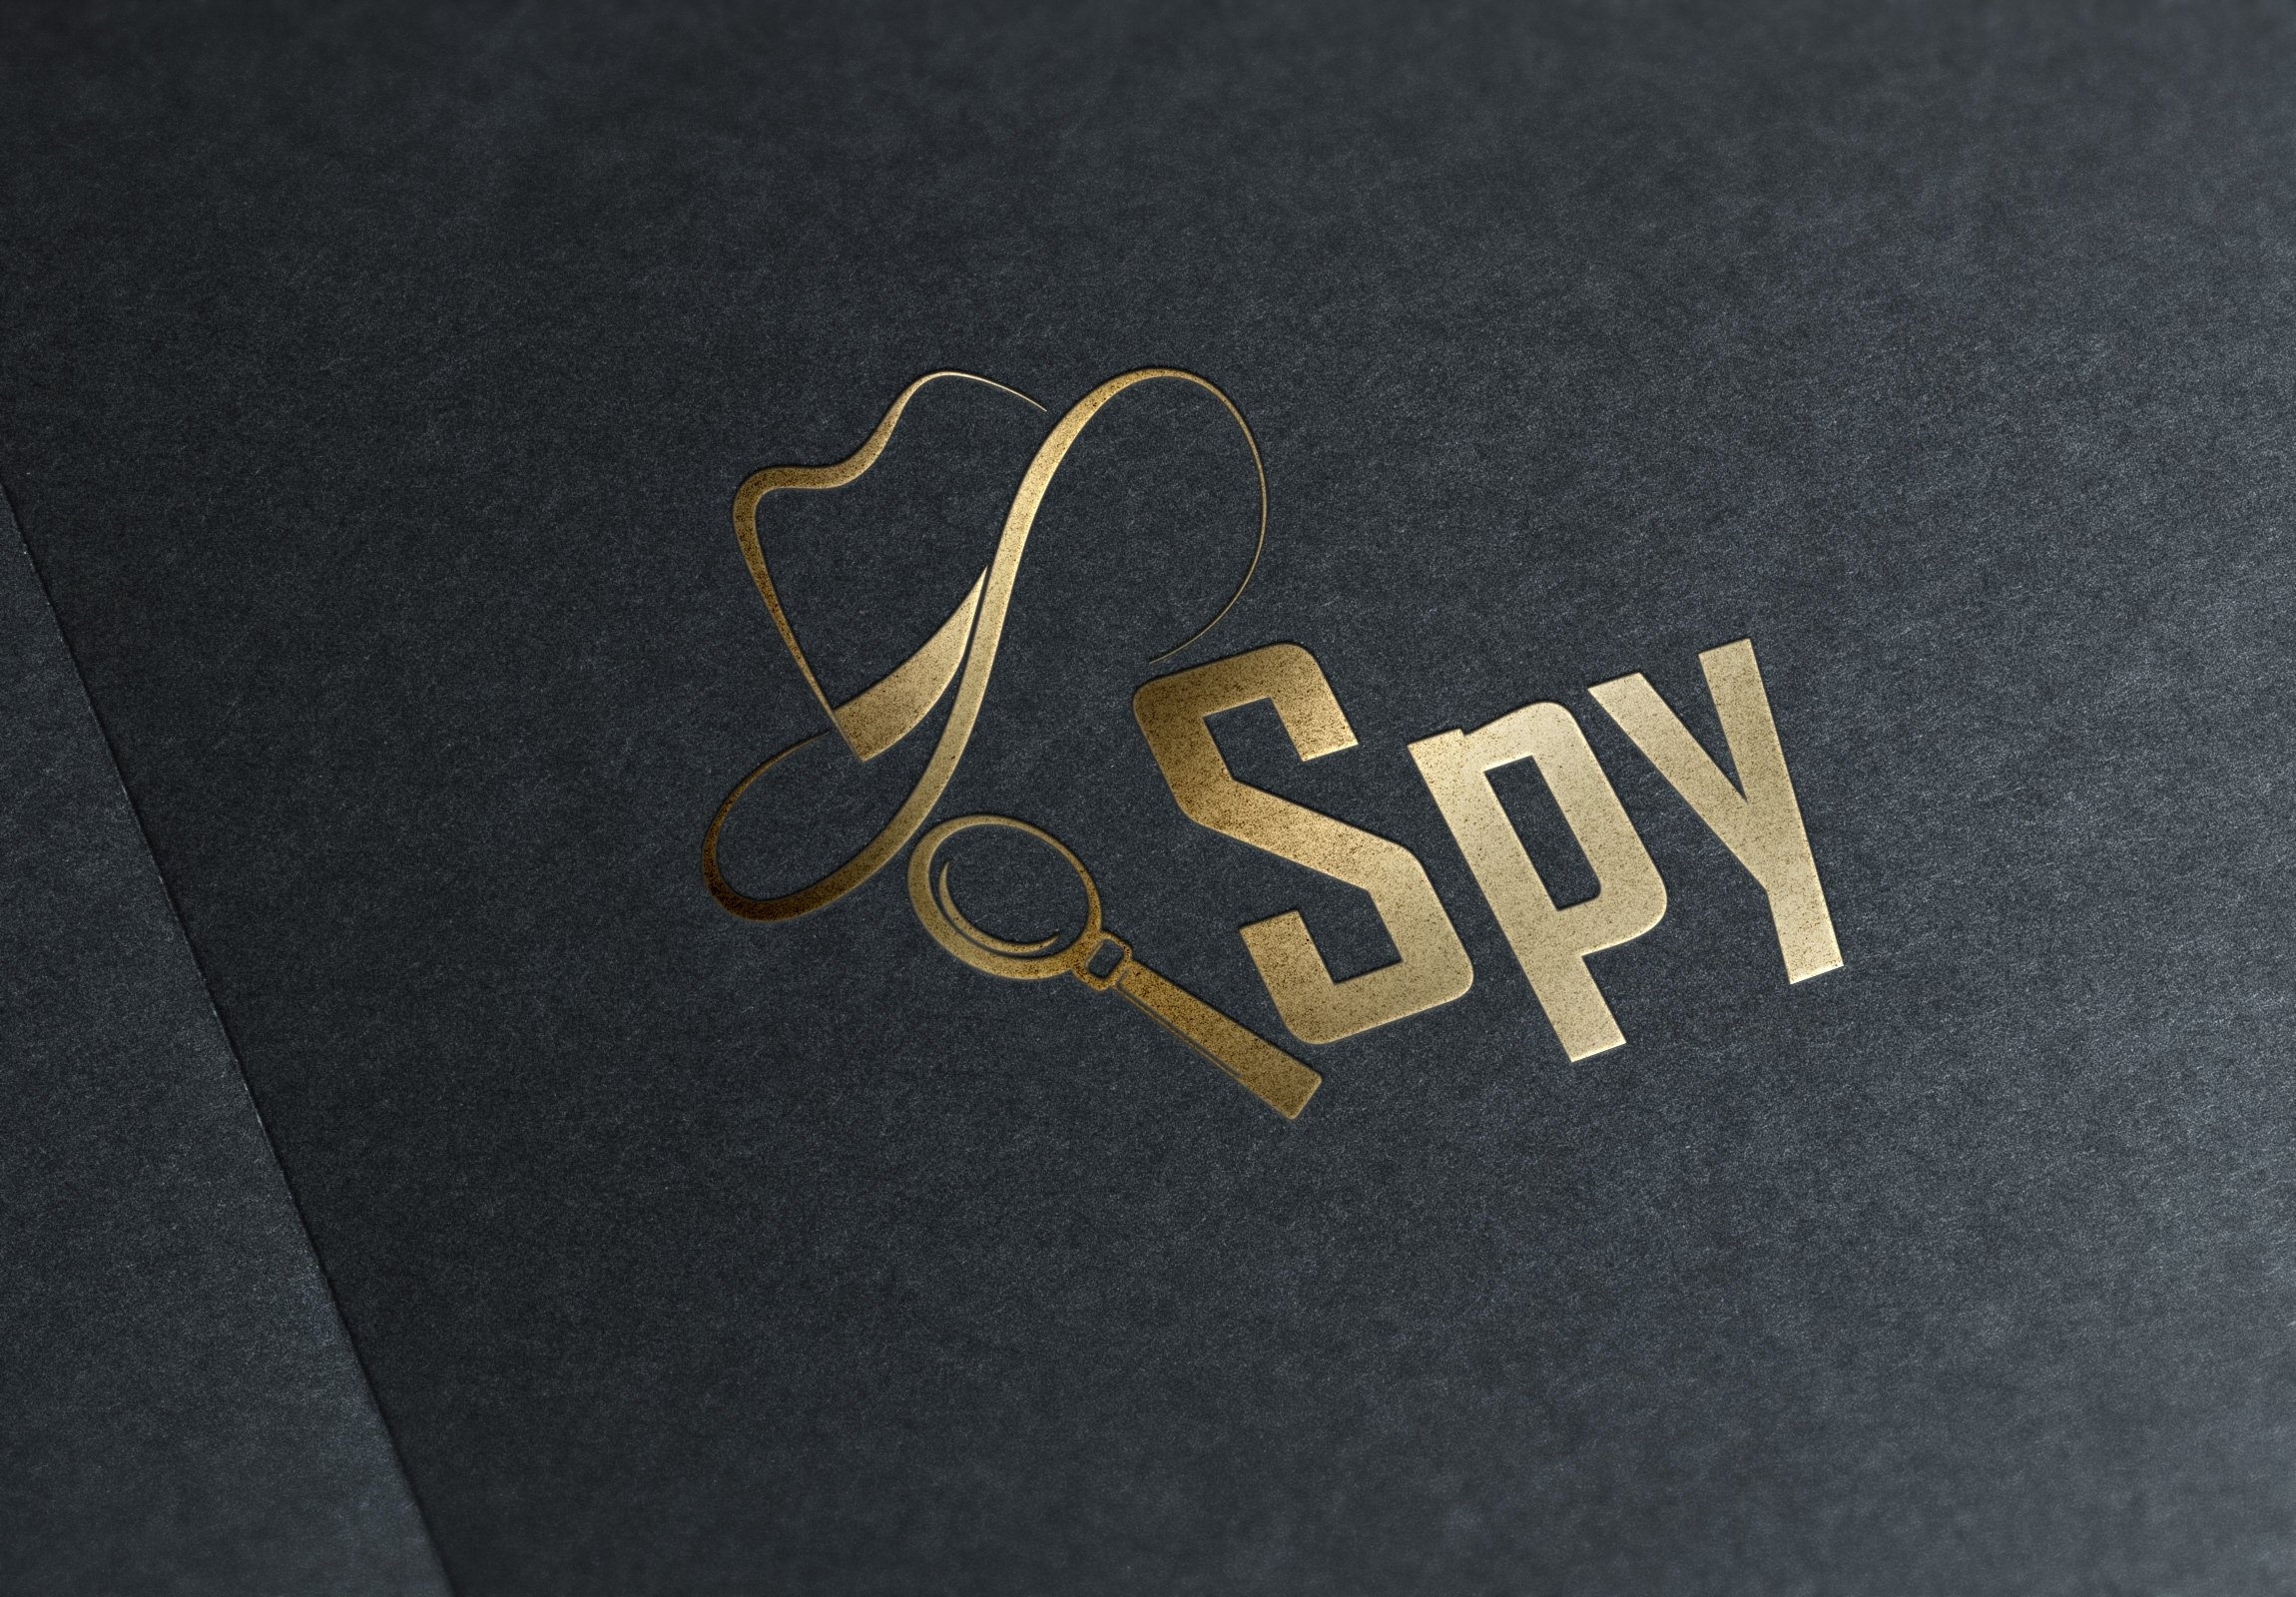 spy logo creative illustrator templates creative market spy logo creative illustrator